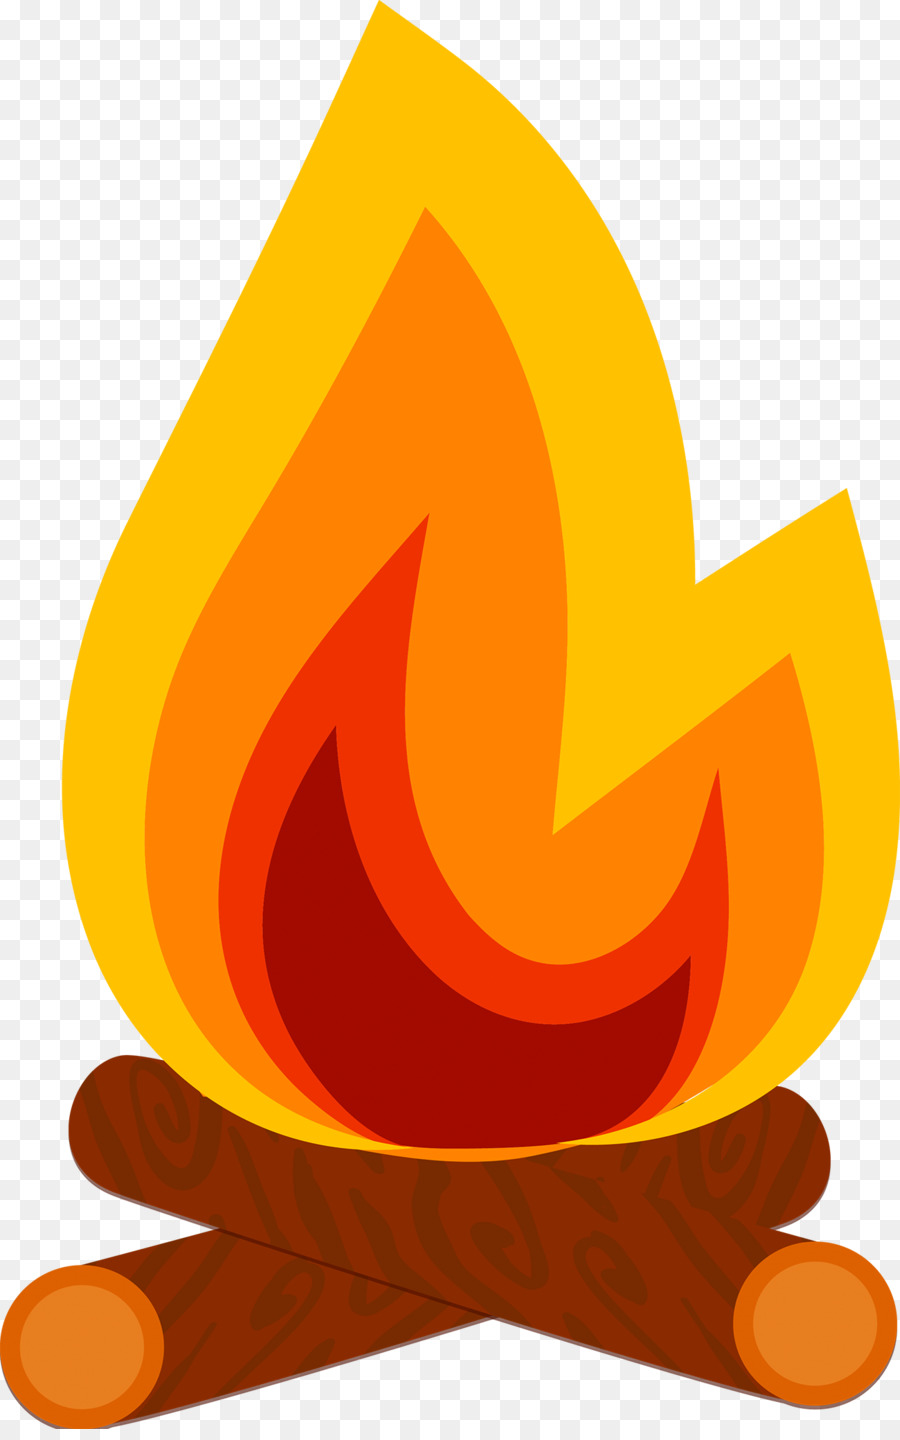 Clipart bonfire clip freeuse Background Free Fire png download - 1300*2064 - Free Transparent ... clip freeuse